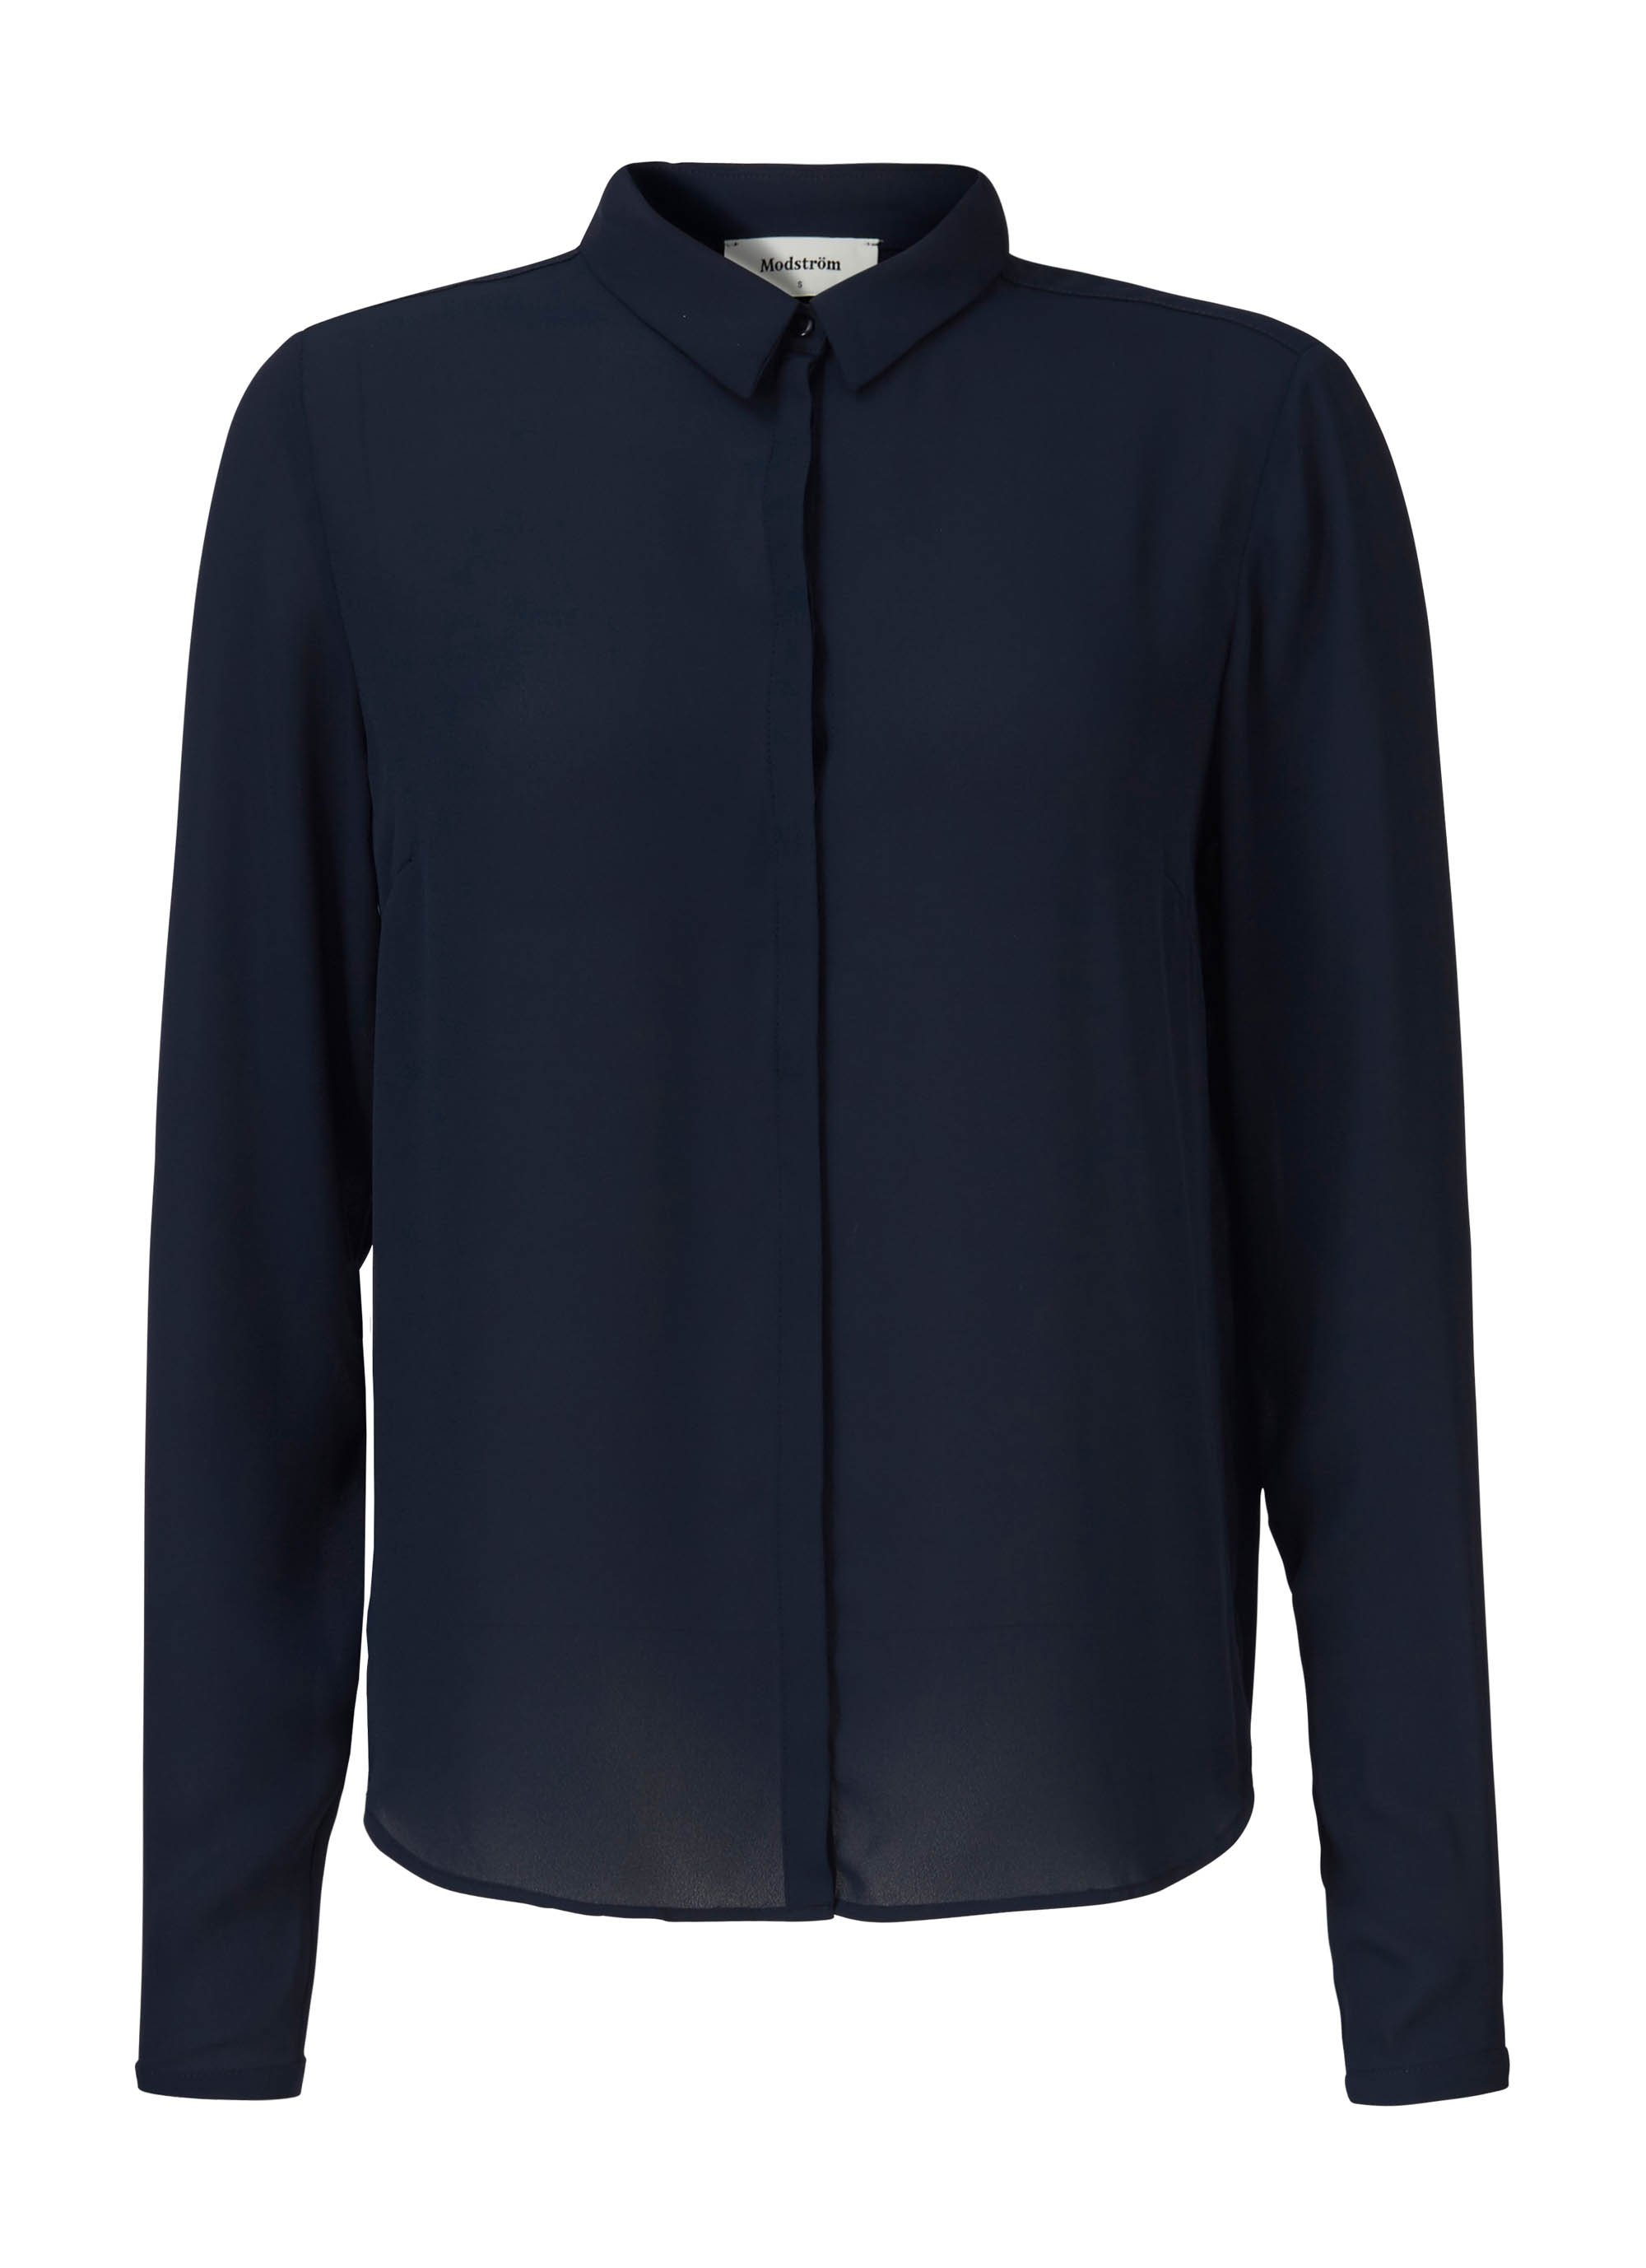 Cyler Collar Shirt - Navy Night